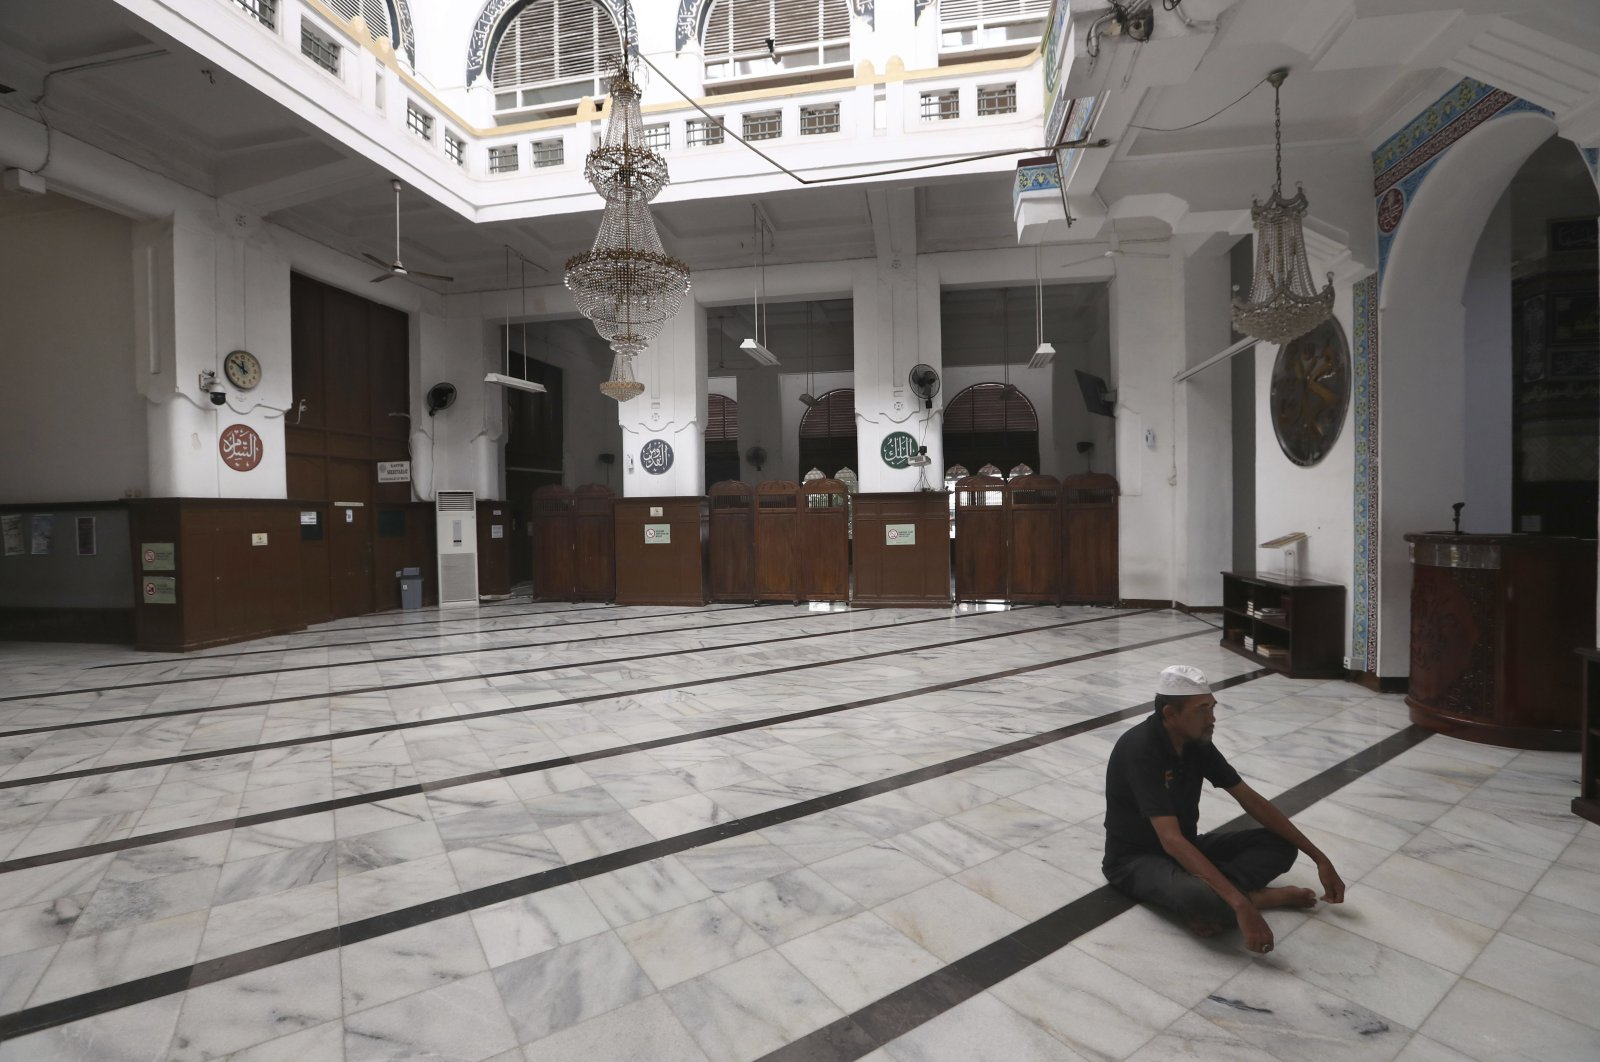 A man prays at an empty mosque in Jakarta, Indonesia, April 10, 2020. (AP Photo)